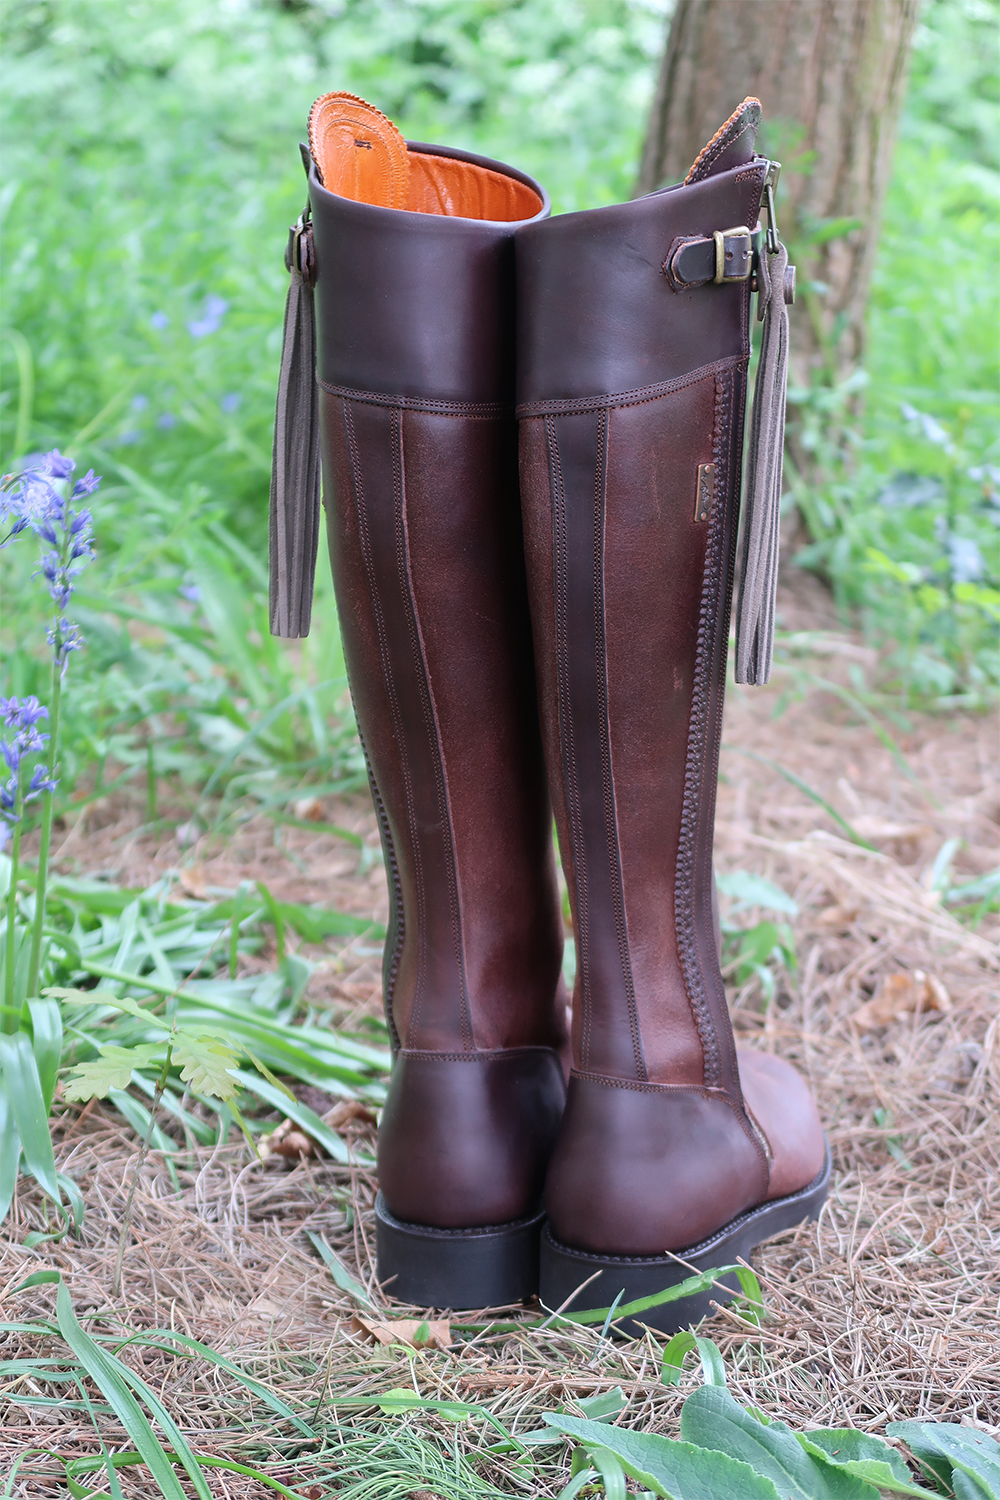 The Spanish Boot Company Tall Flat Sole Boots in Brown Charlotte in England